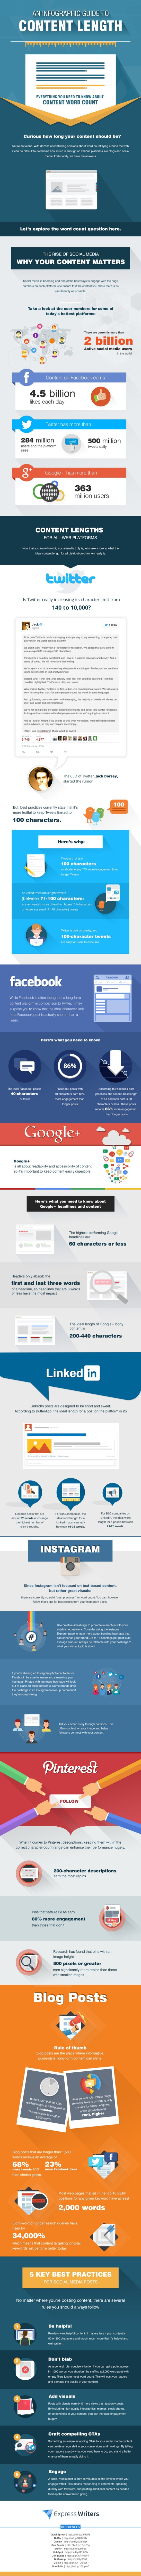 The Guide To Content Word Length (Infographic)